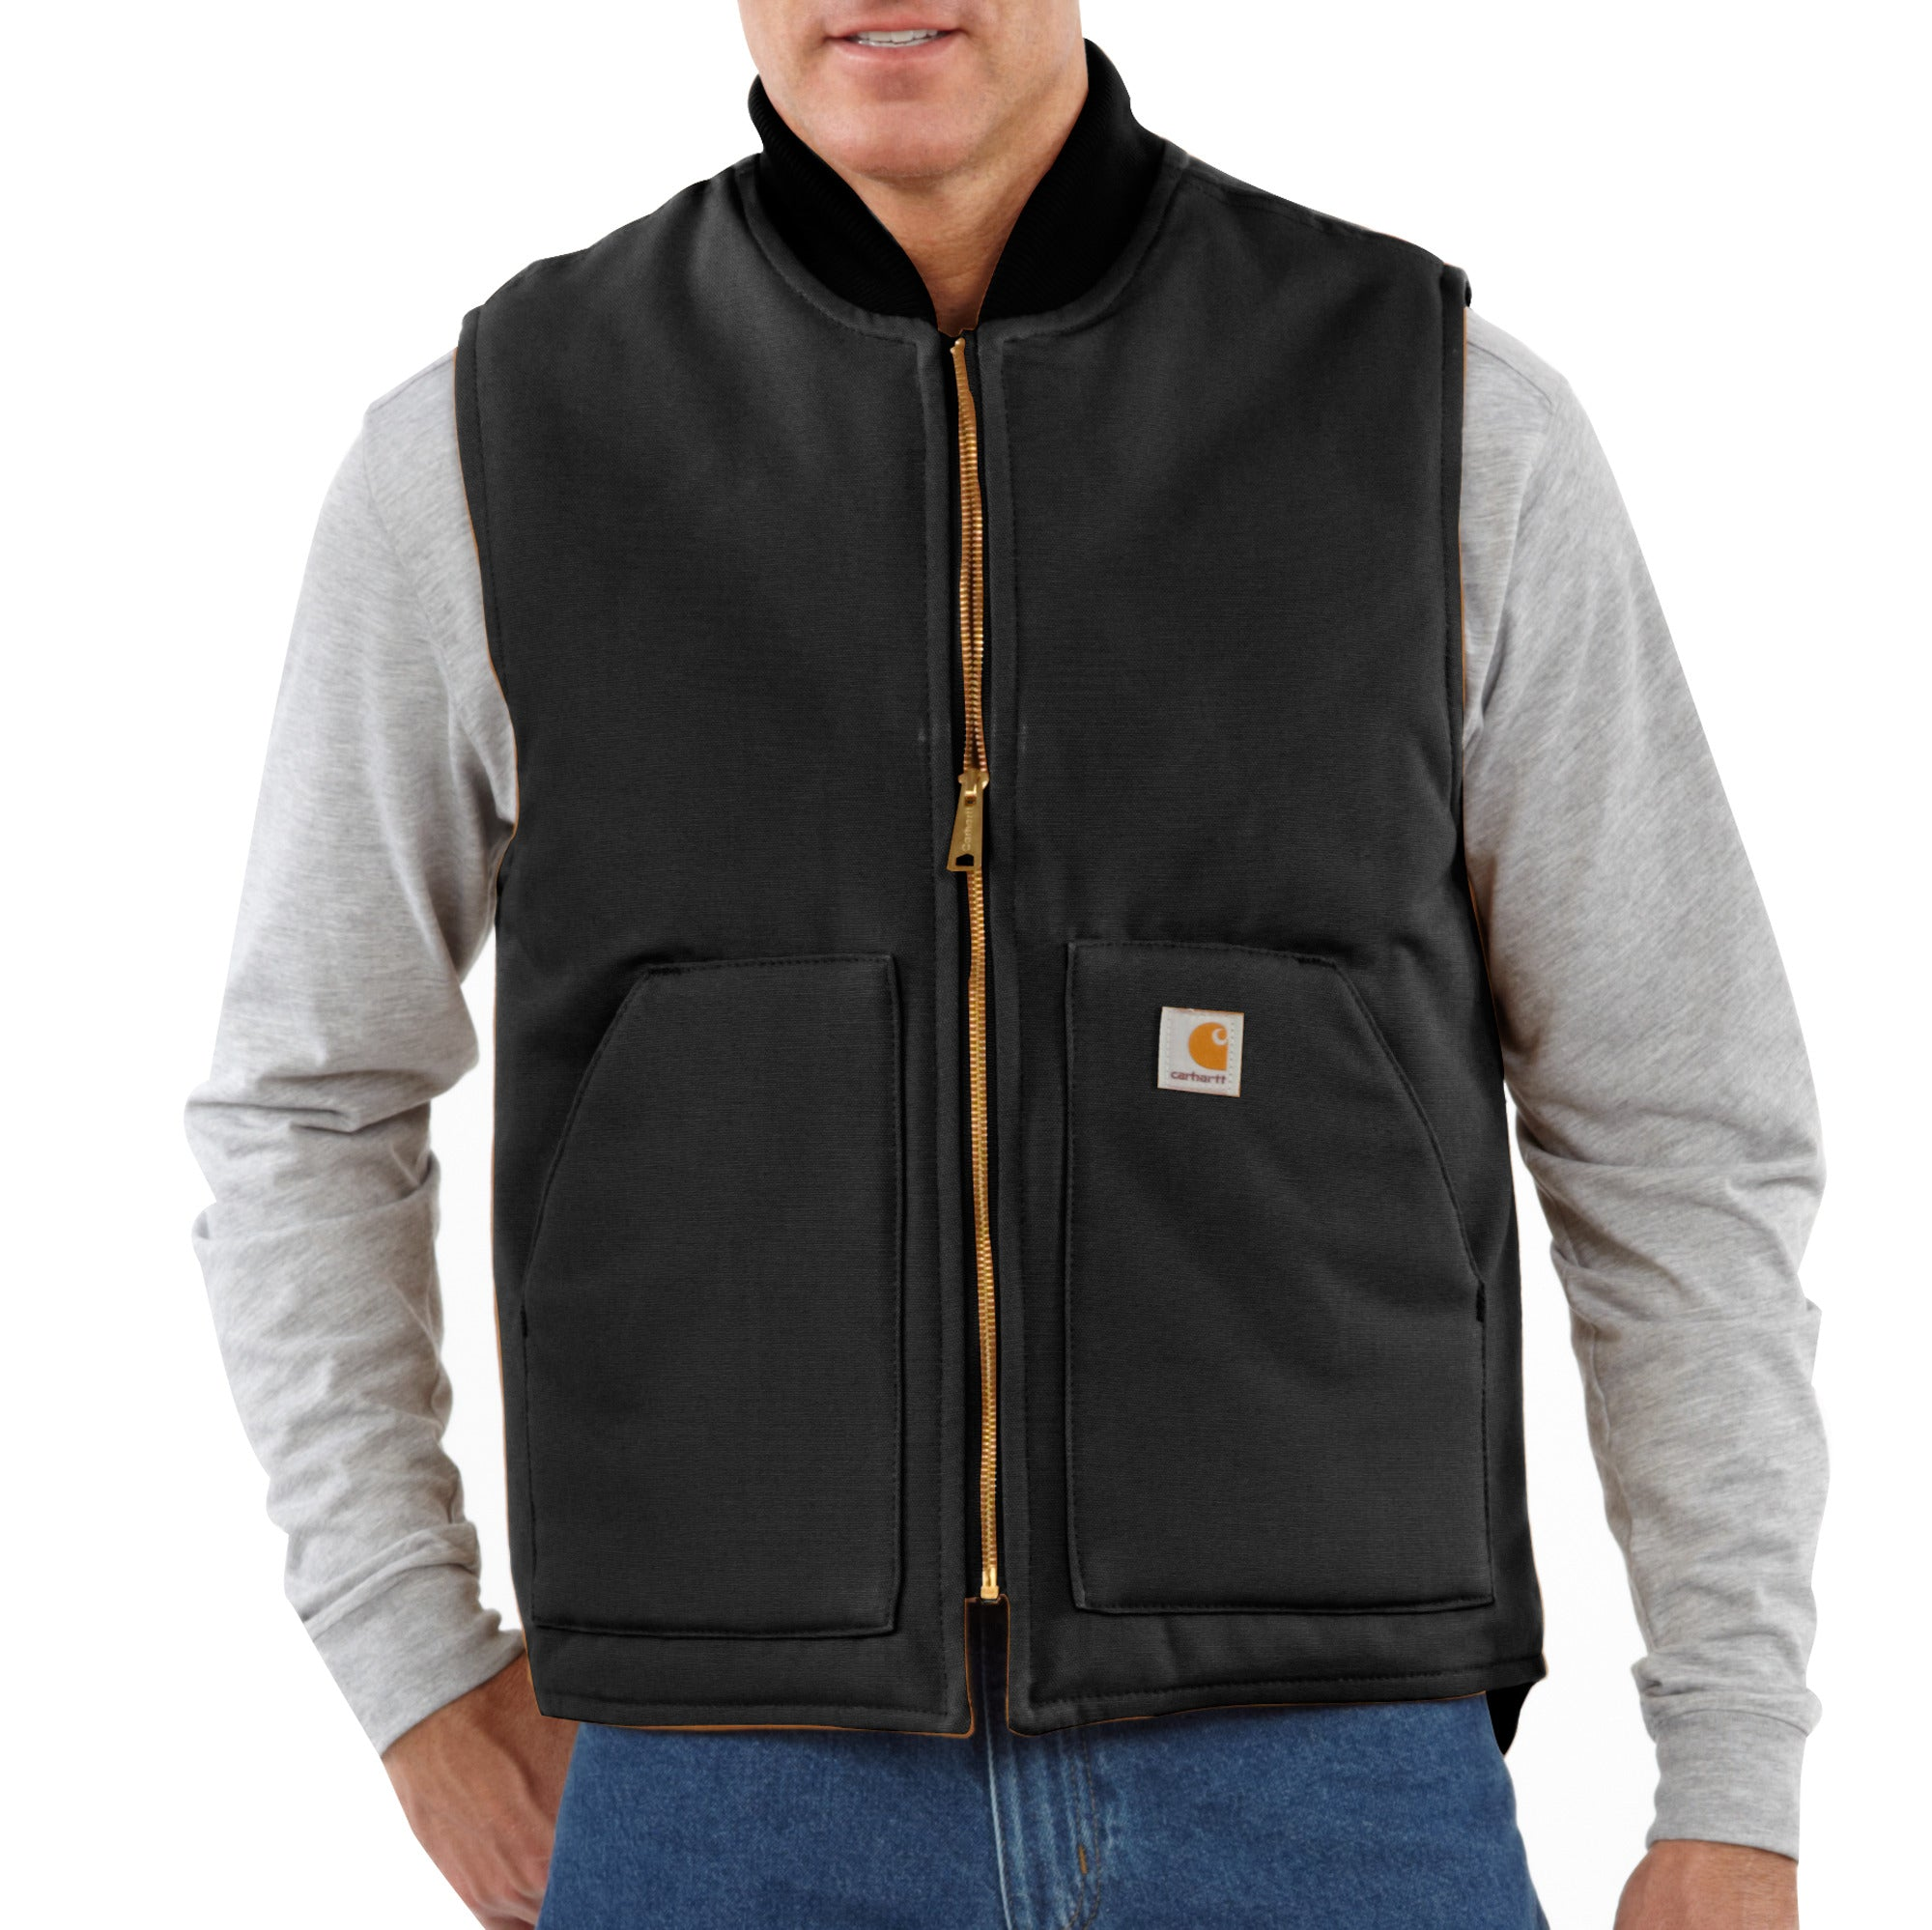 'Carhartt' Men's Duck Vest Arctic Quilt Lined - Black